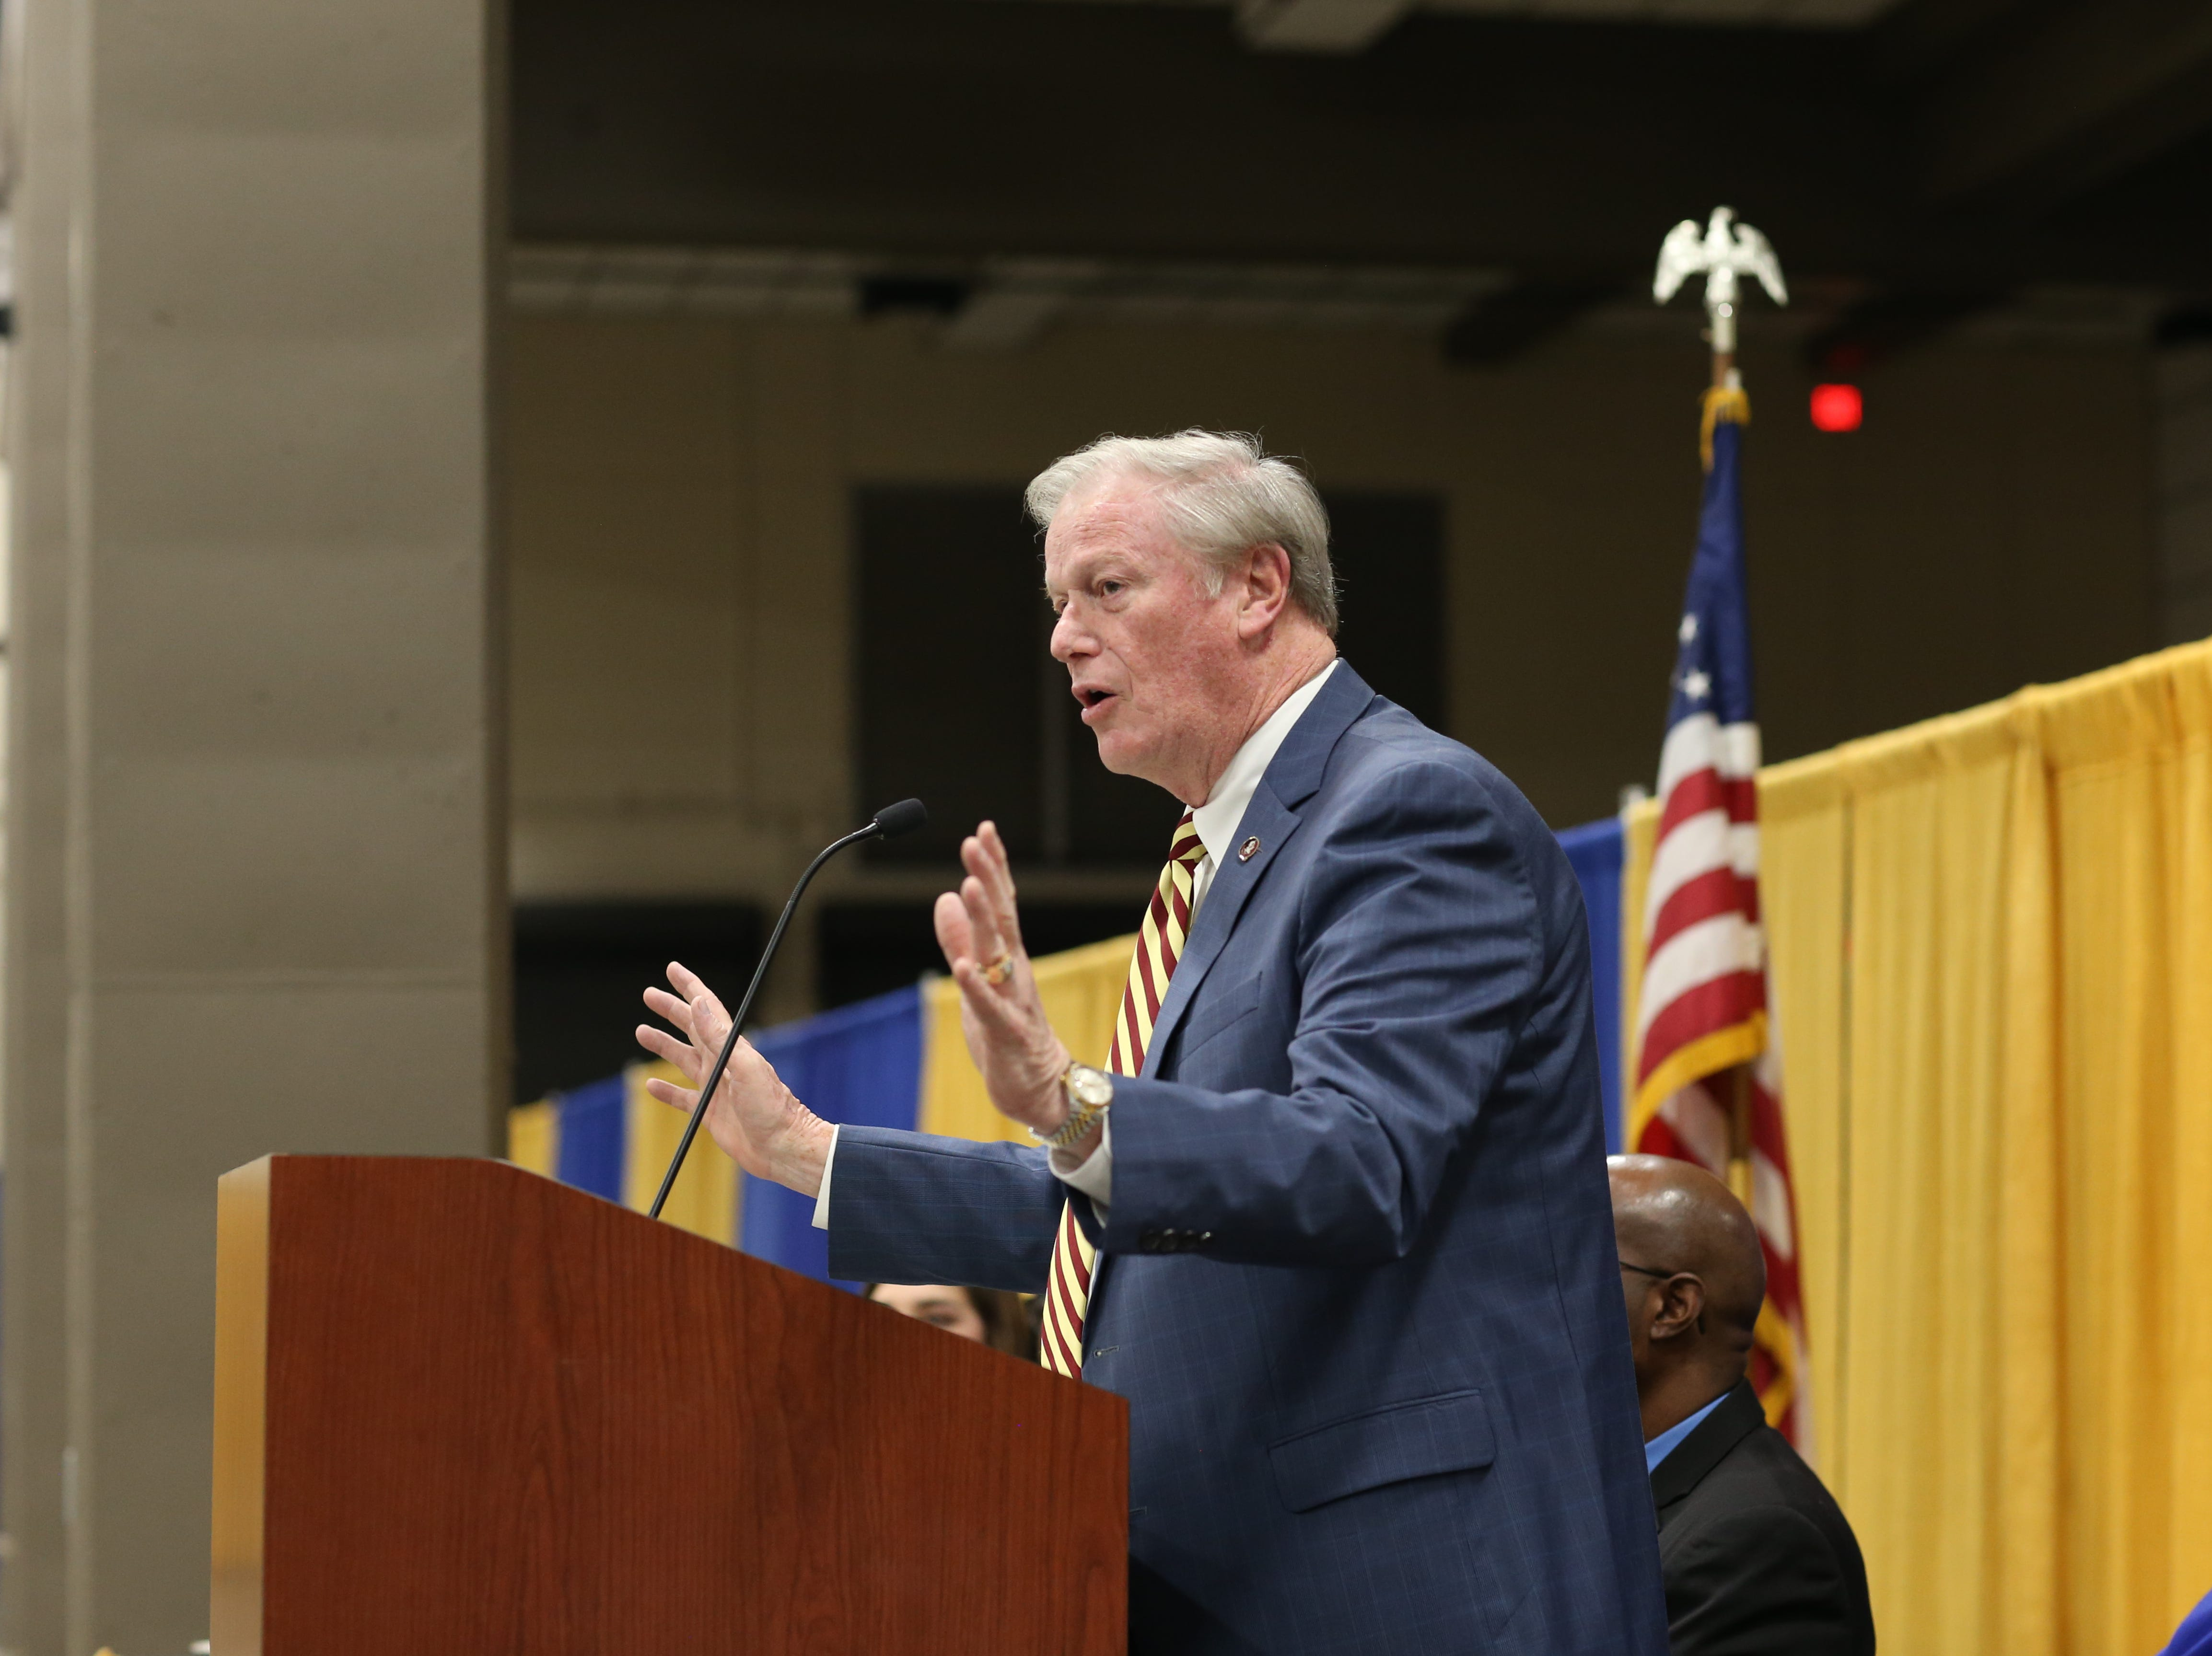 Florida State University President John Thrasher speaks about diversity at his university and the legacy of Martin Luther King Jr. during the Martin Luther King Jr. commemorative breakfast at Donald L. Tucker Civic Center Friday, Jan. 18, 2019.